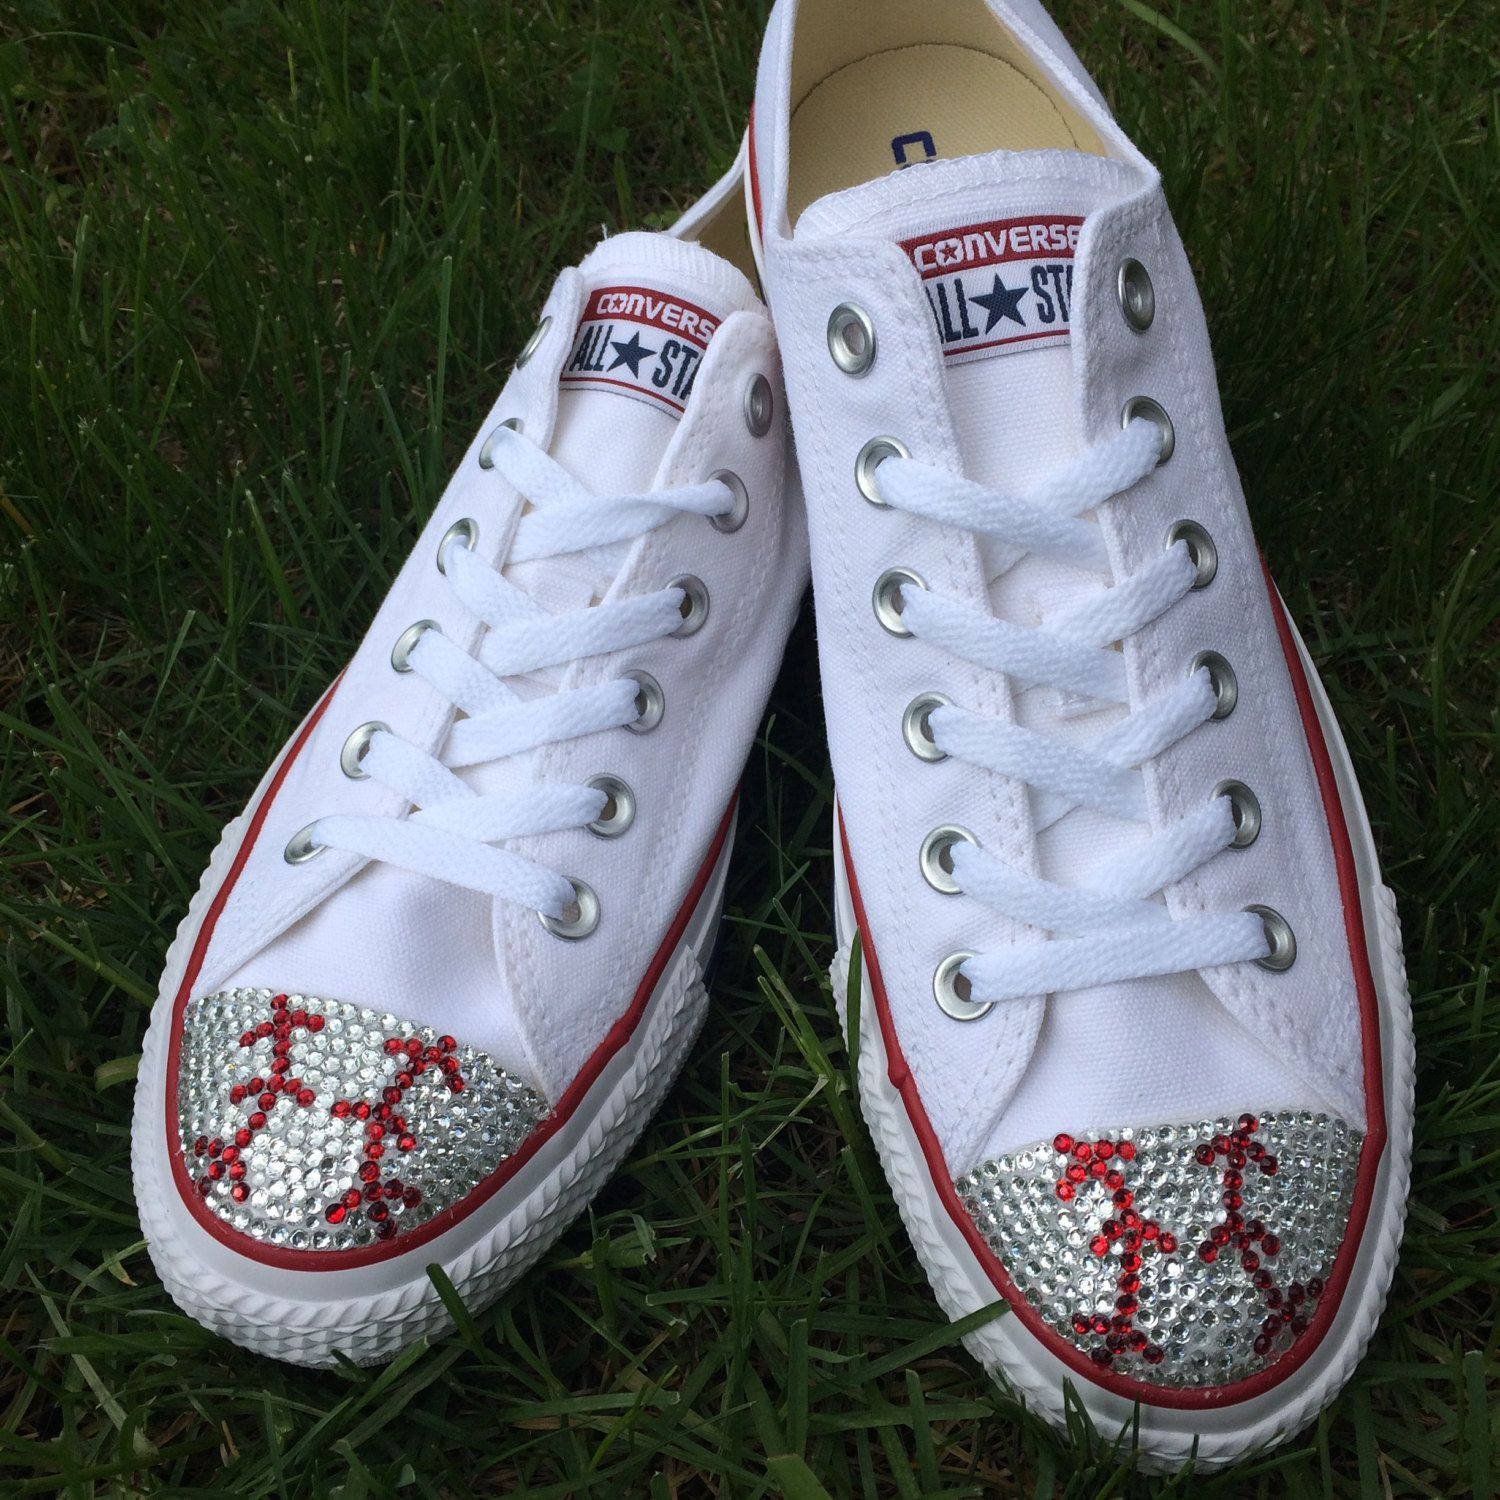 3fef19239e37 Baseball Converse Shoes. Women s White Low Top Converse Shoes with Baseball  Bling. Rhinestone baseball Bling perfect for any Baseball Fan by  TrickedKicks on ...